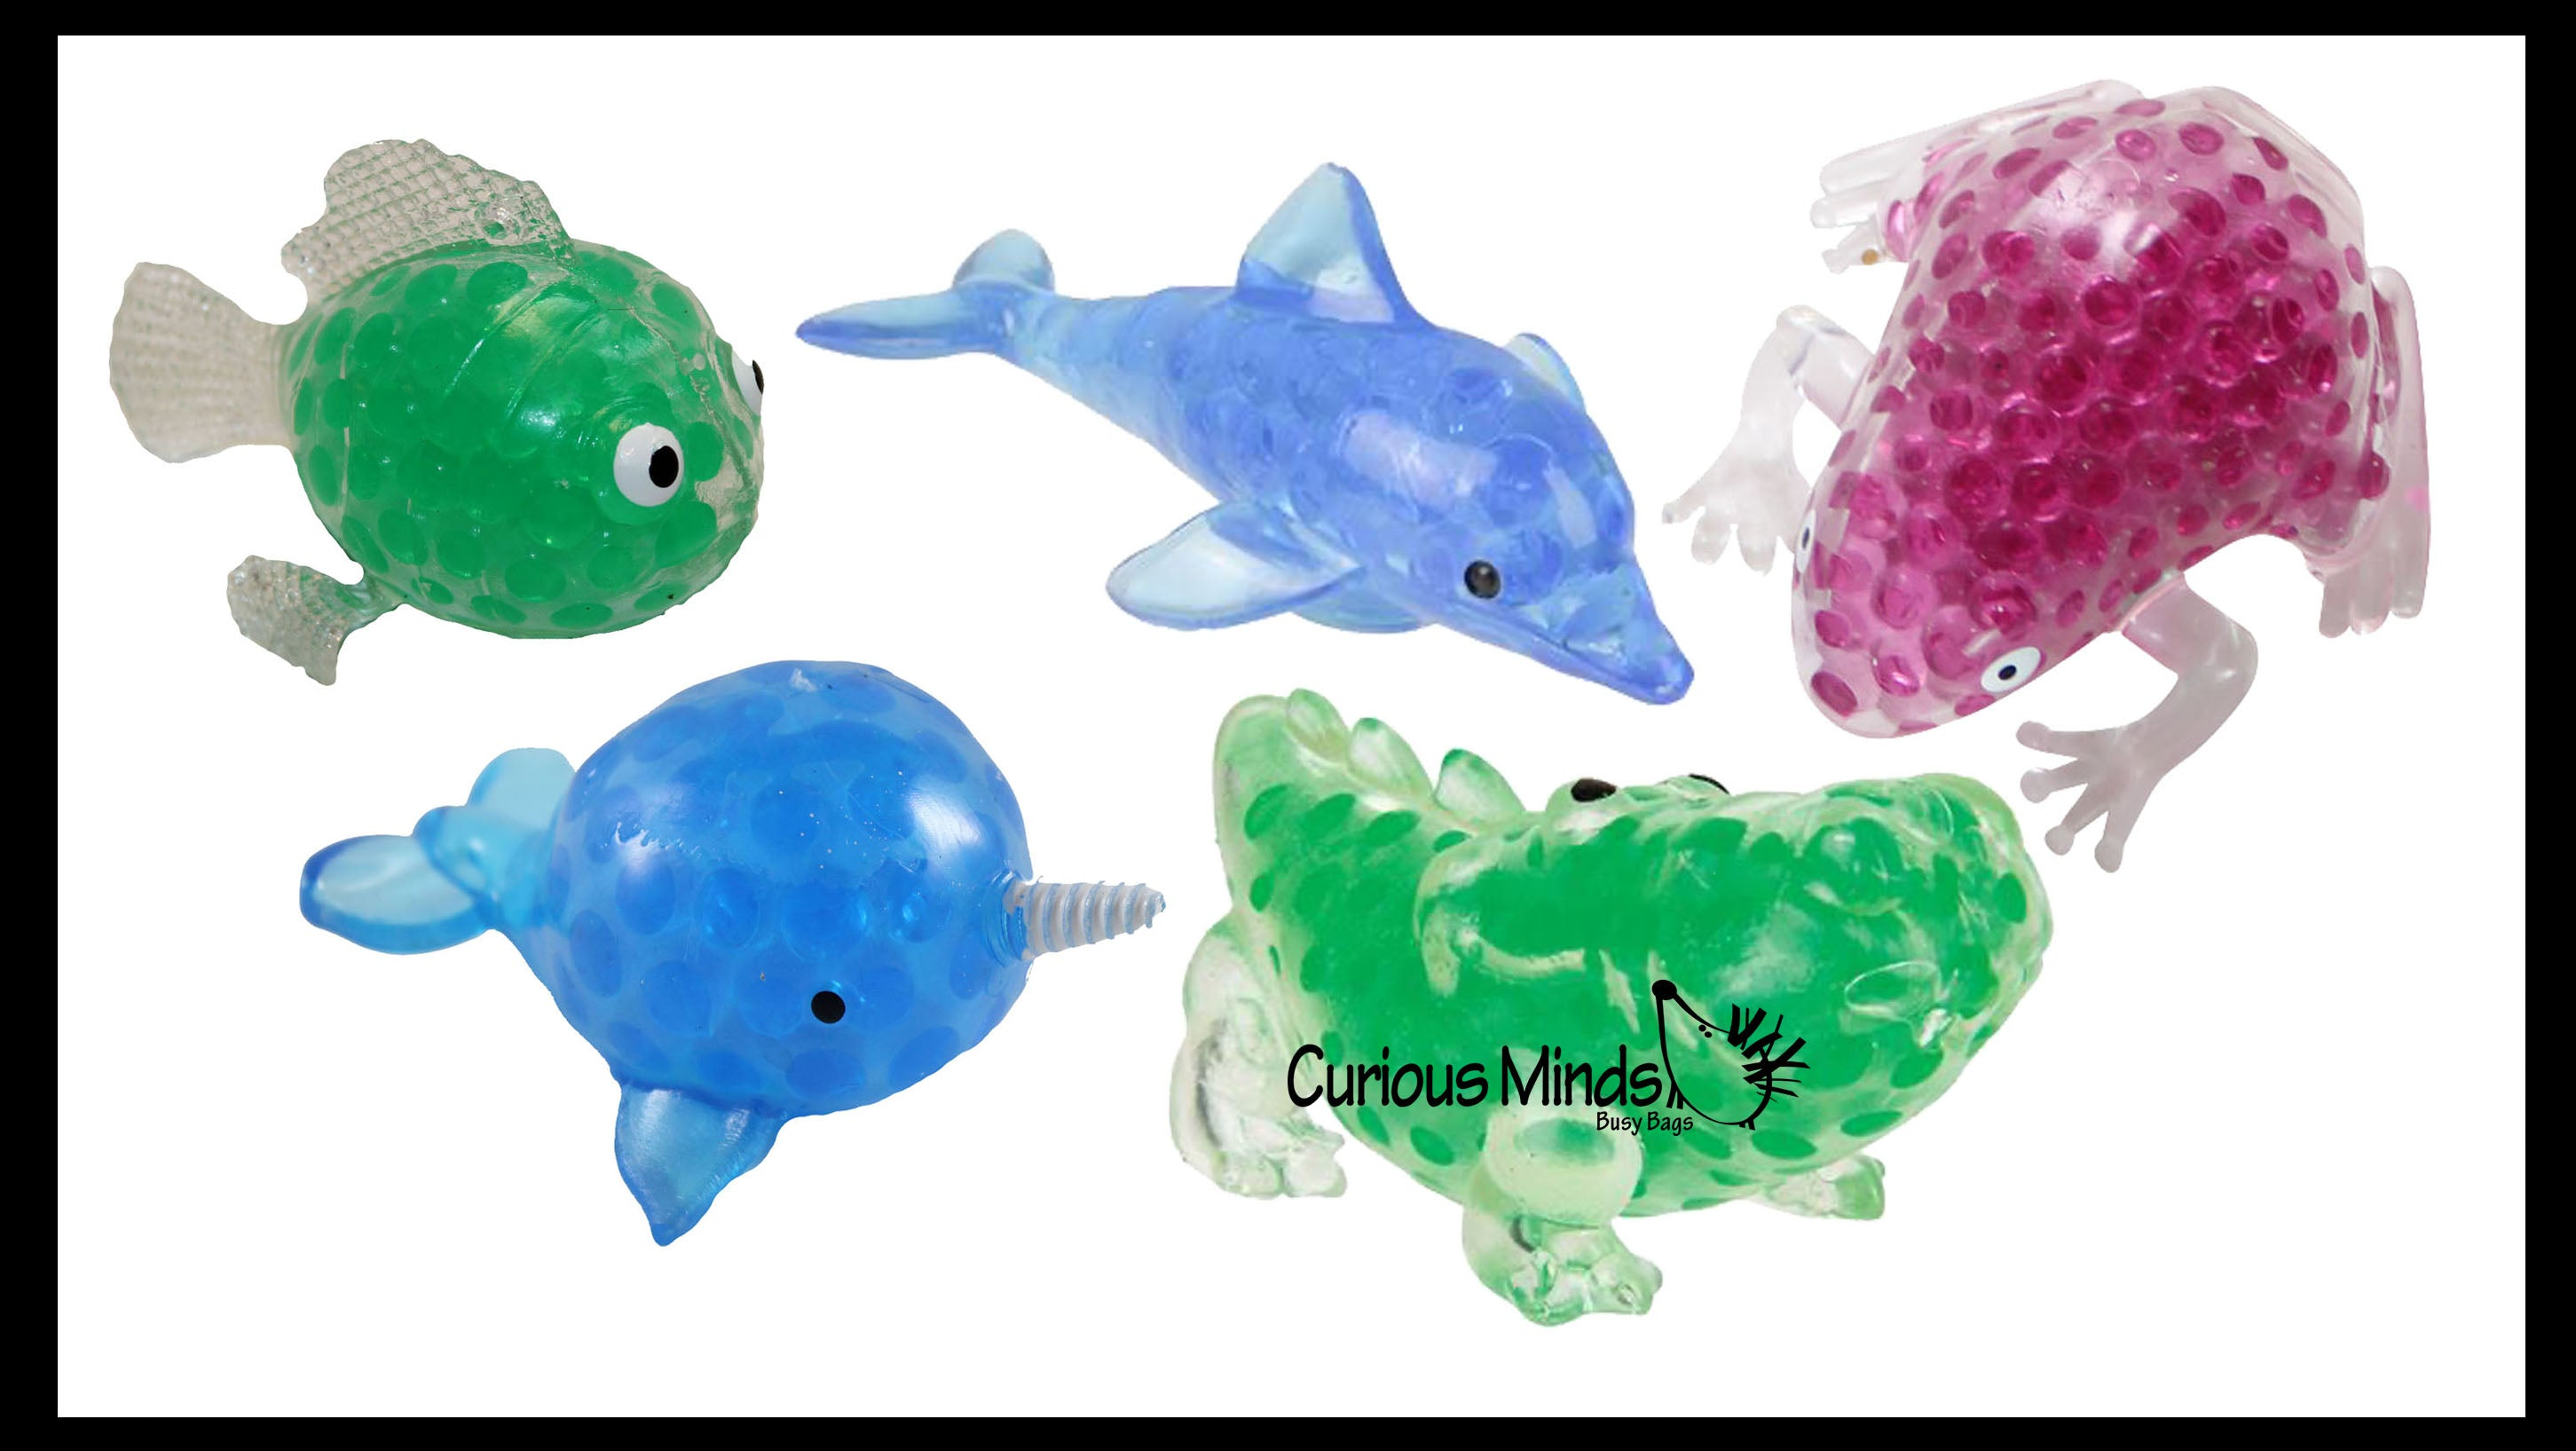 Animal Water Bead Filled Squeeze Stress Ball Variety Pack  of 5 -  Sensory, Stress, Fidget Toy - Sticky Target Ceiling Balls